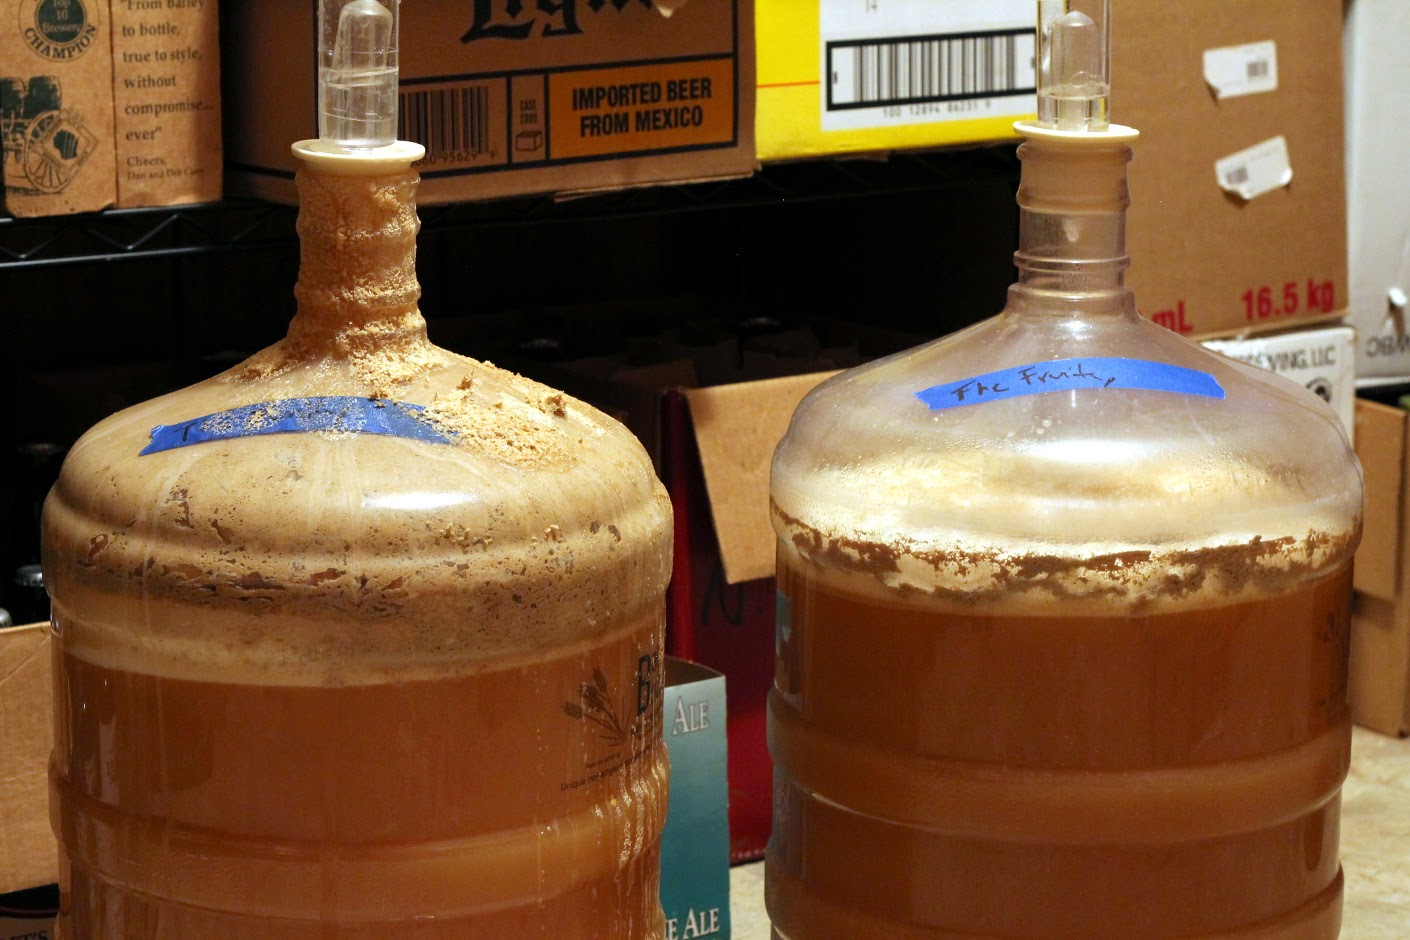 The Belgian yeast unsurprisingly was a little more active.